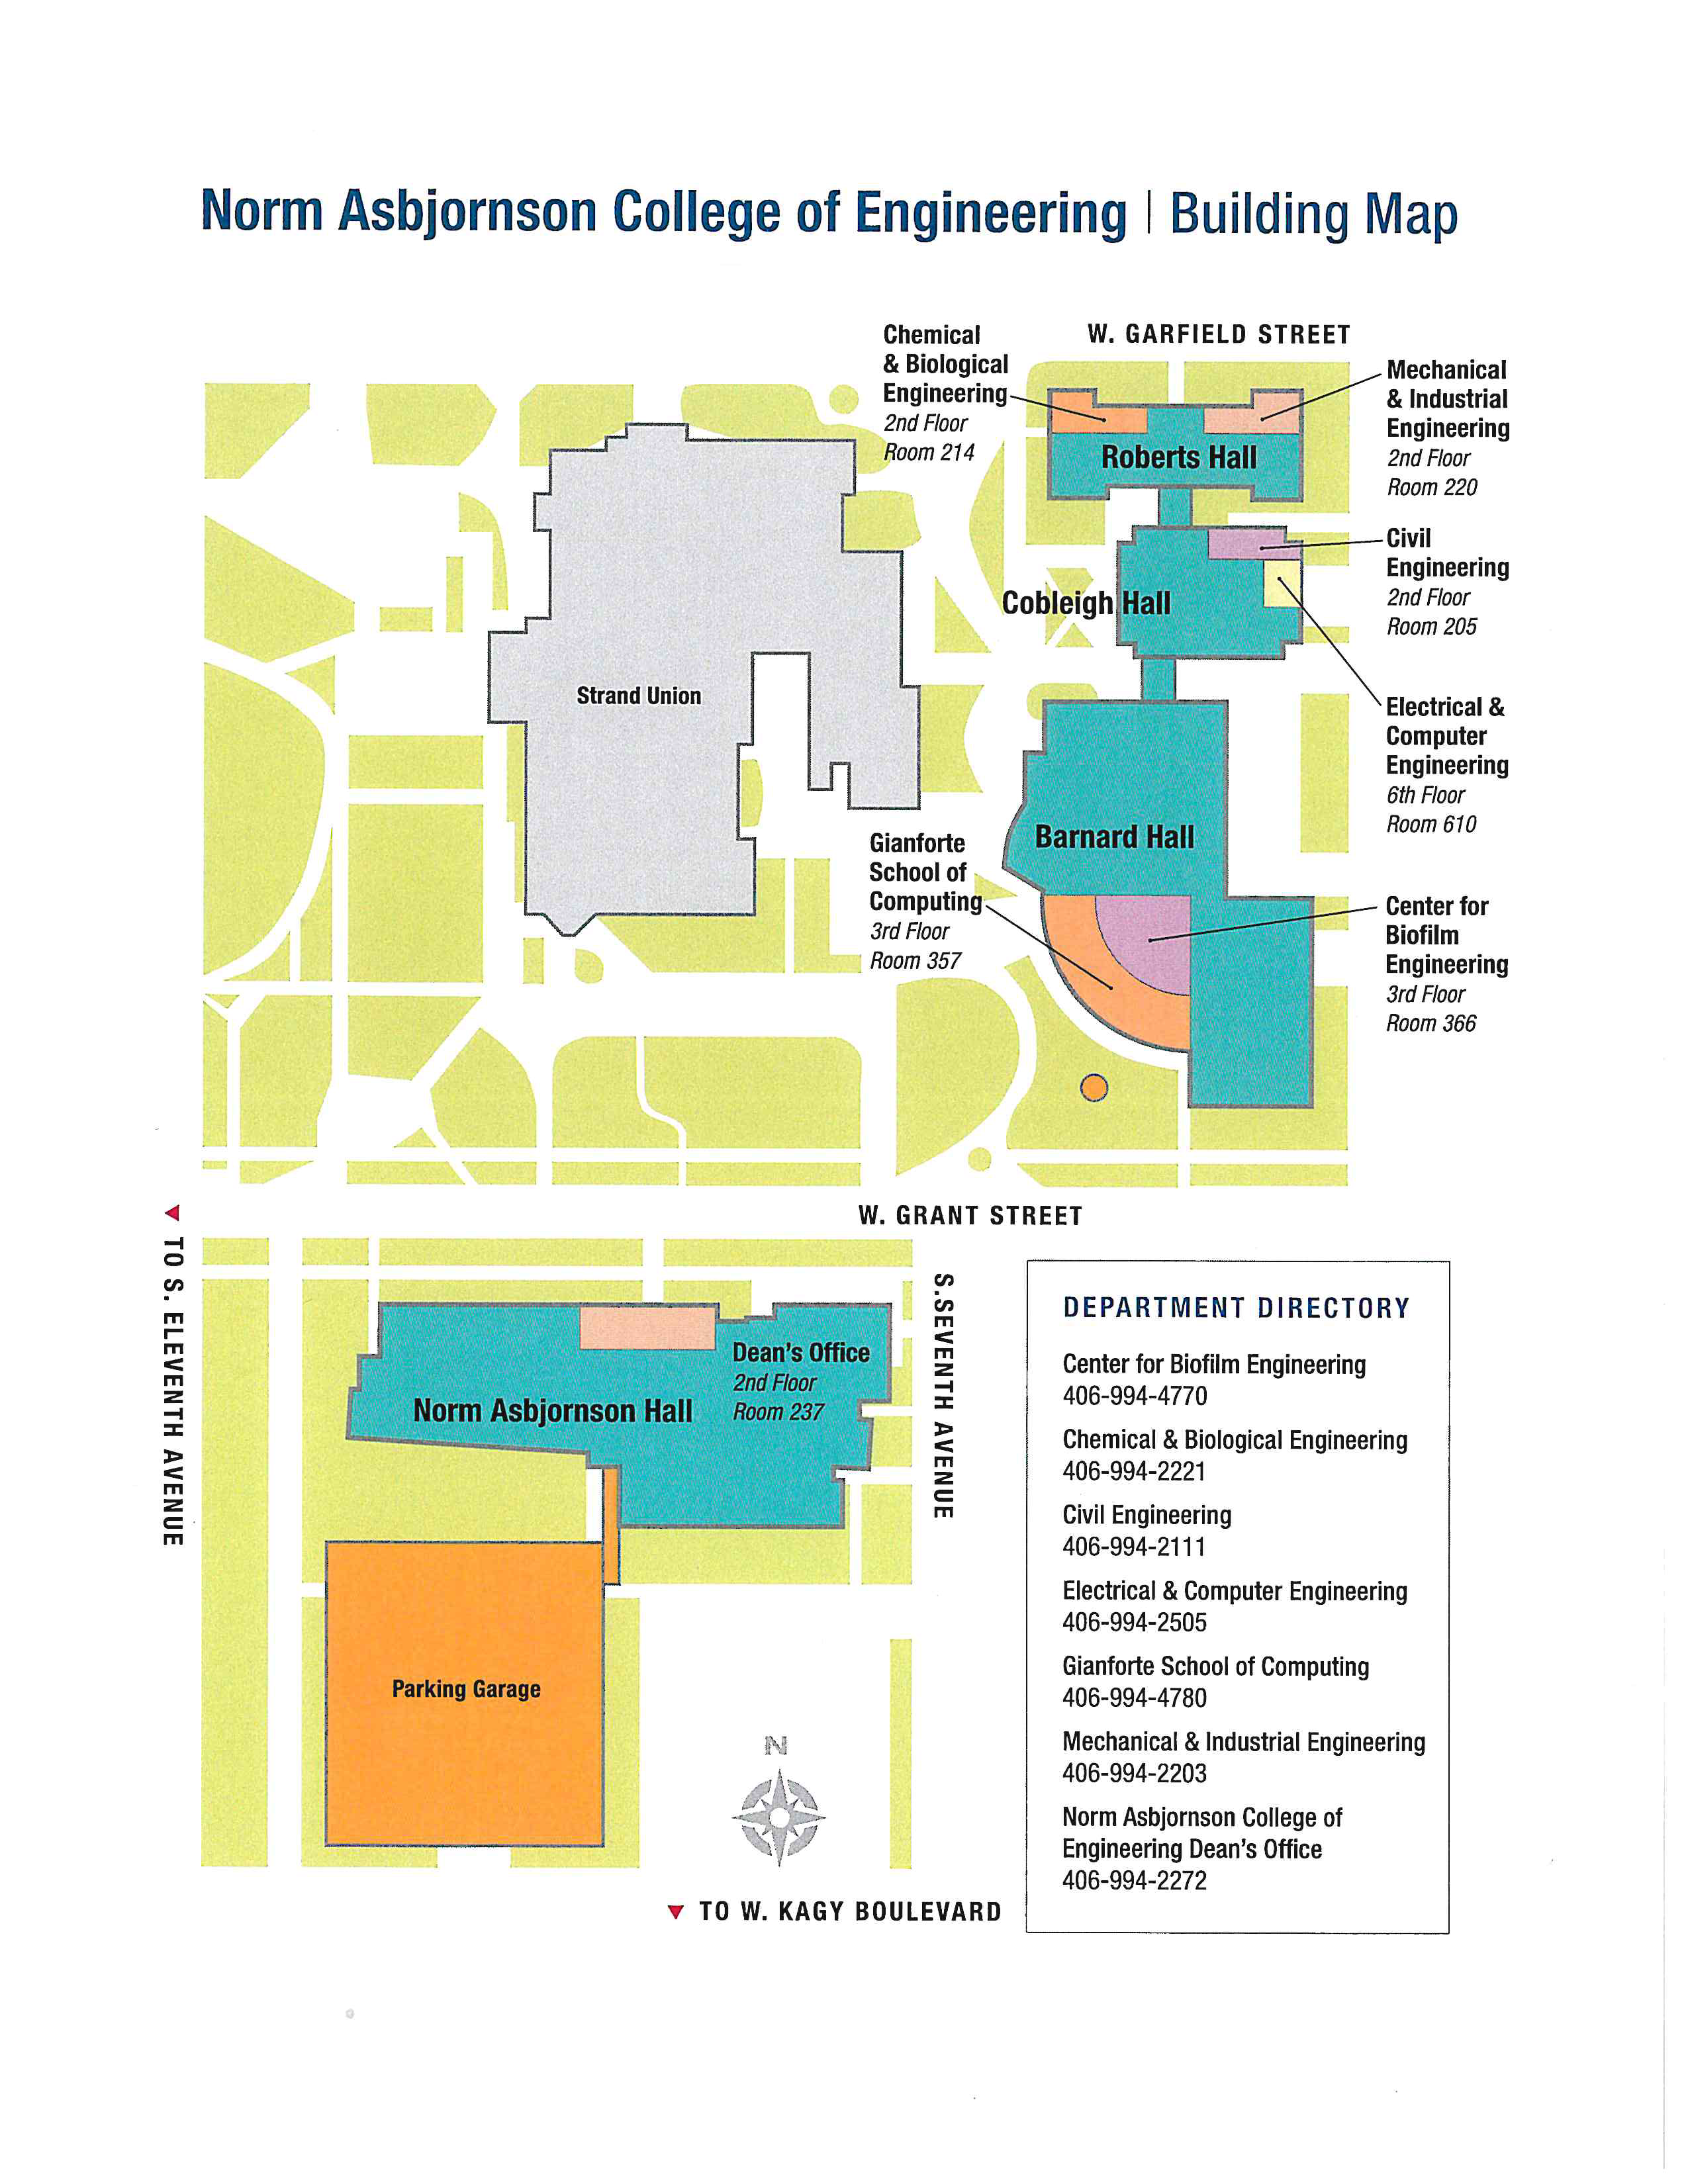 Map of Norm Asbjornson College of Engineering Buildings